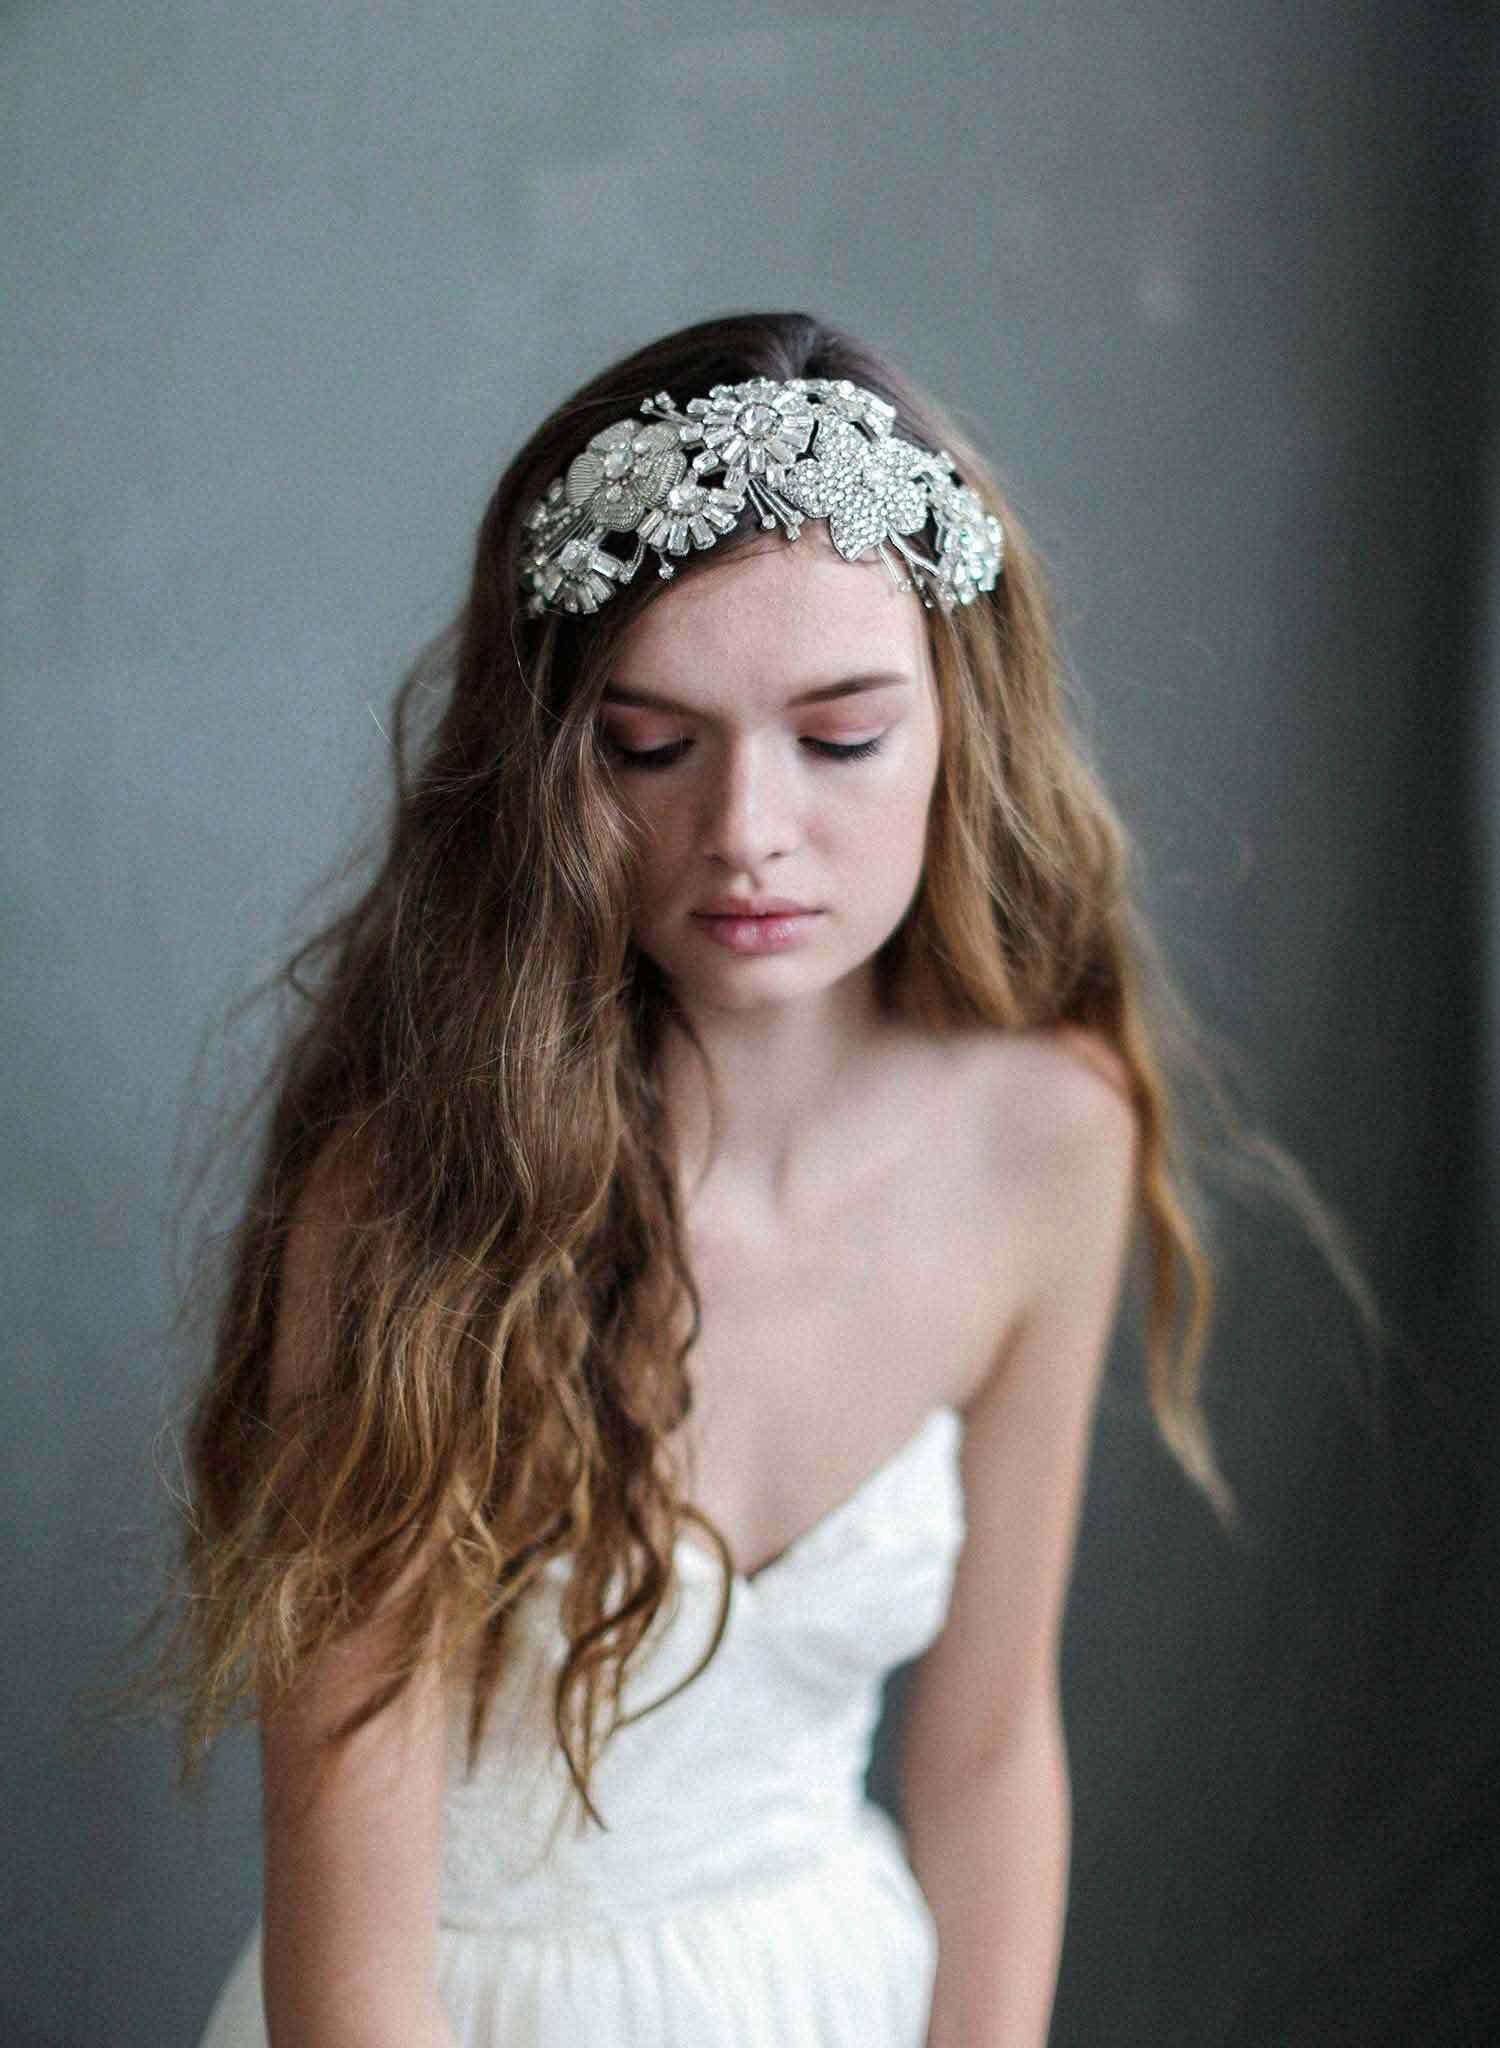 Crystal wedding headpiece - Crystal dreams floral bridal headband ... efd7d9bce9f